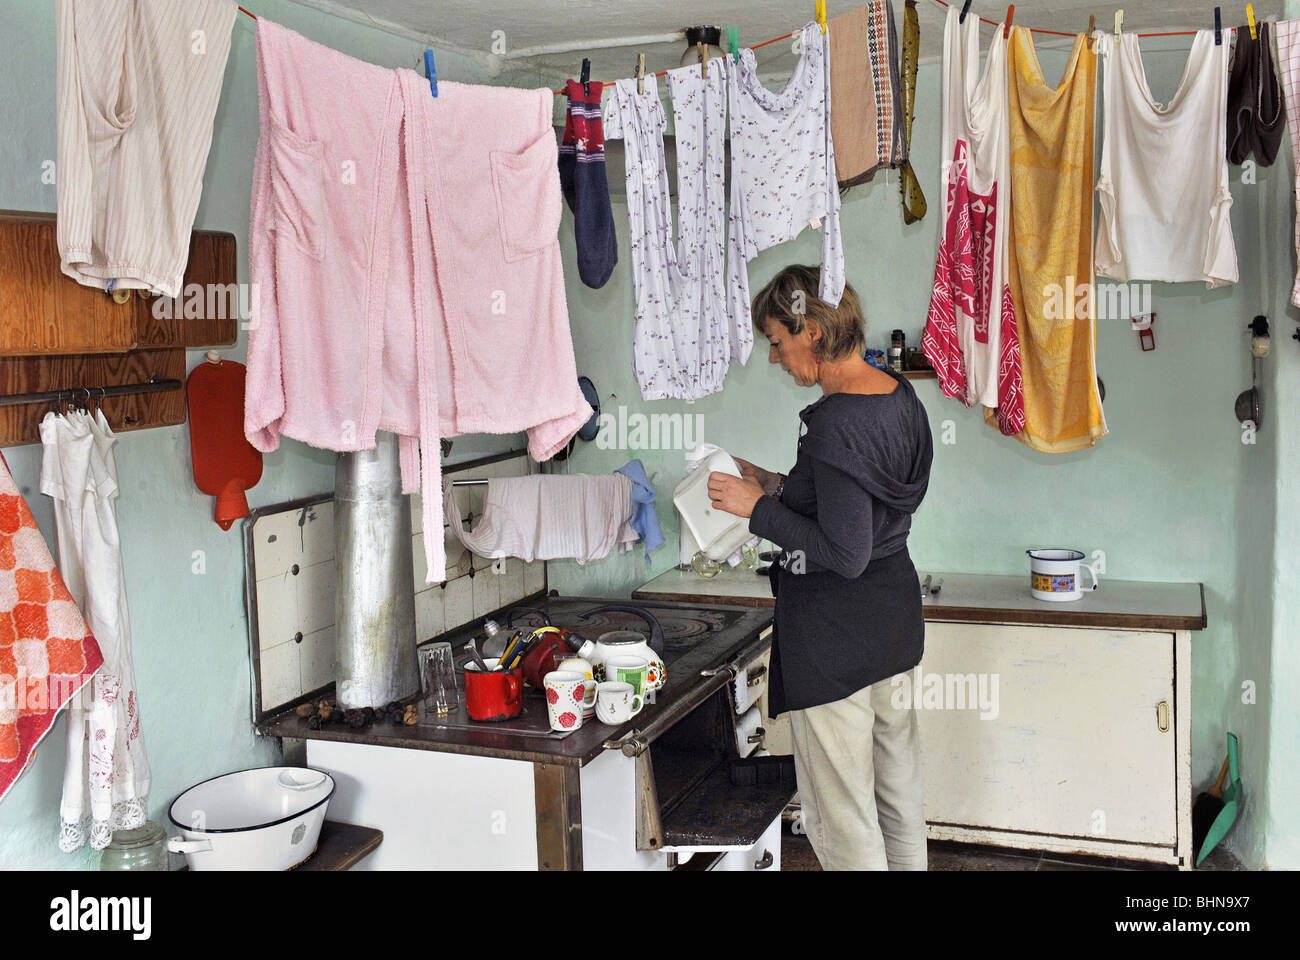 household, kitchen and kitchenware, housewife standing at stove, Germany, historic, historical, Bavaria, housewife, - Stock Image